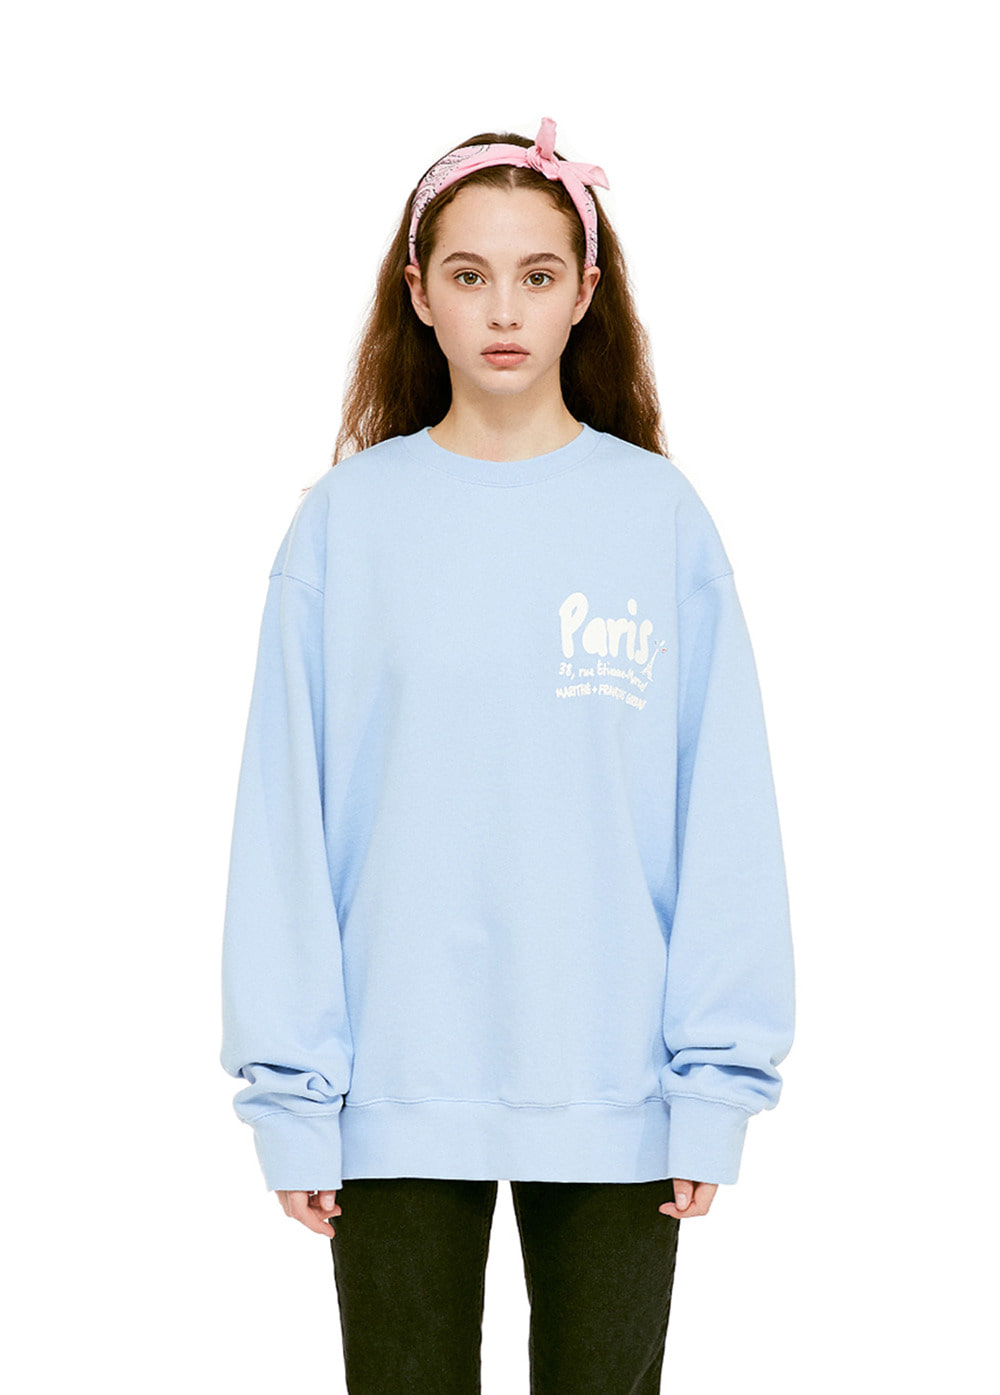 MFG MARKER L ADRESSE SWEATSHIRT powder blue